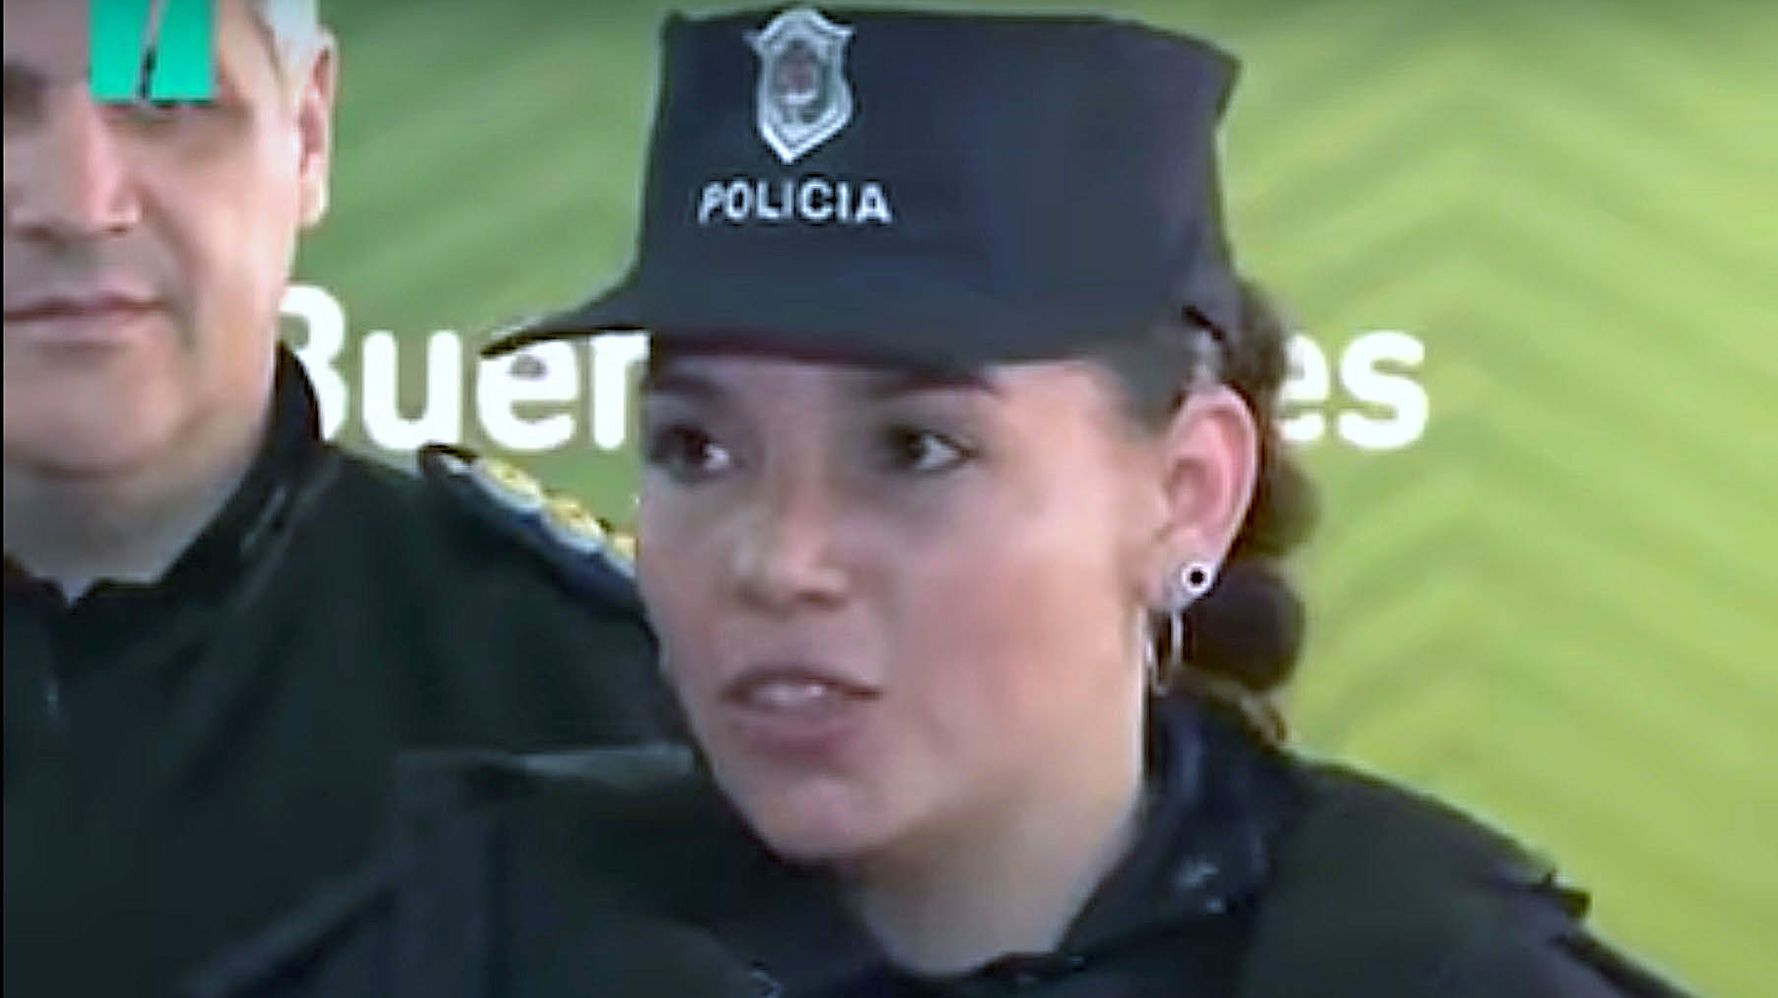 Police Officer On Duty At Argentina Hospital Breastfeeds Malnourished Baby